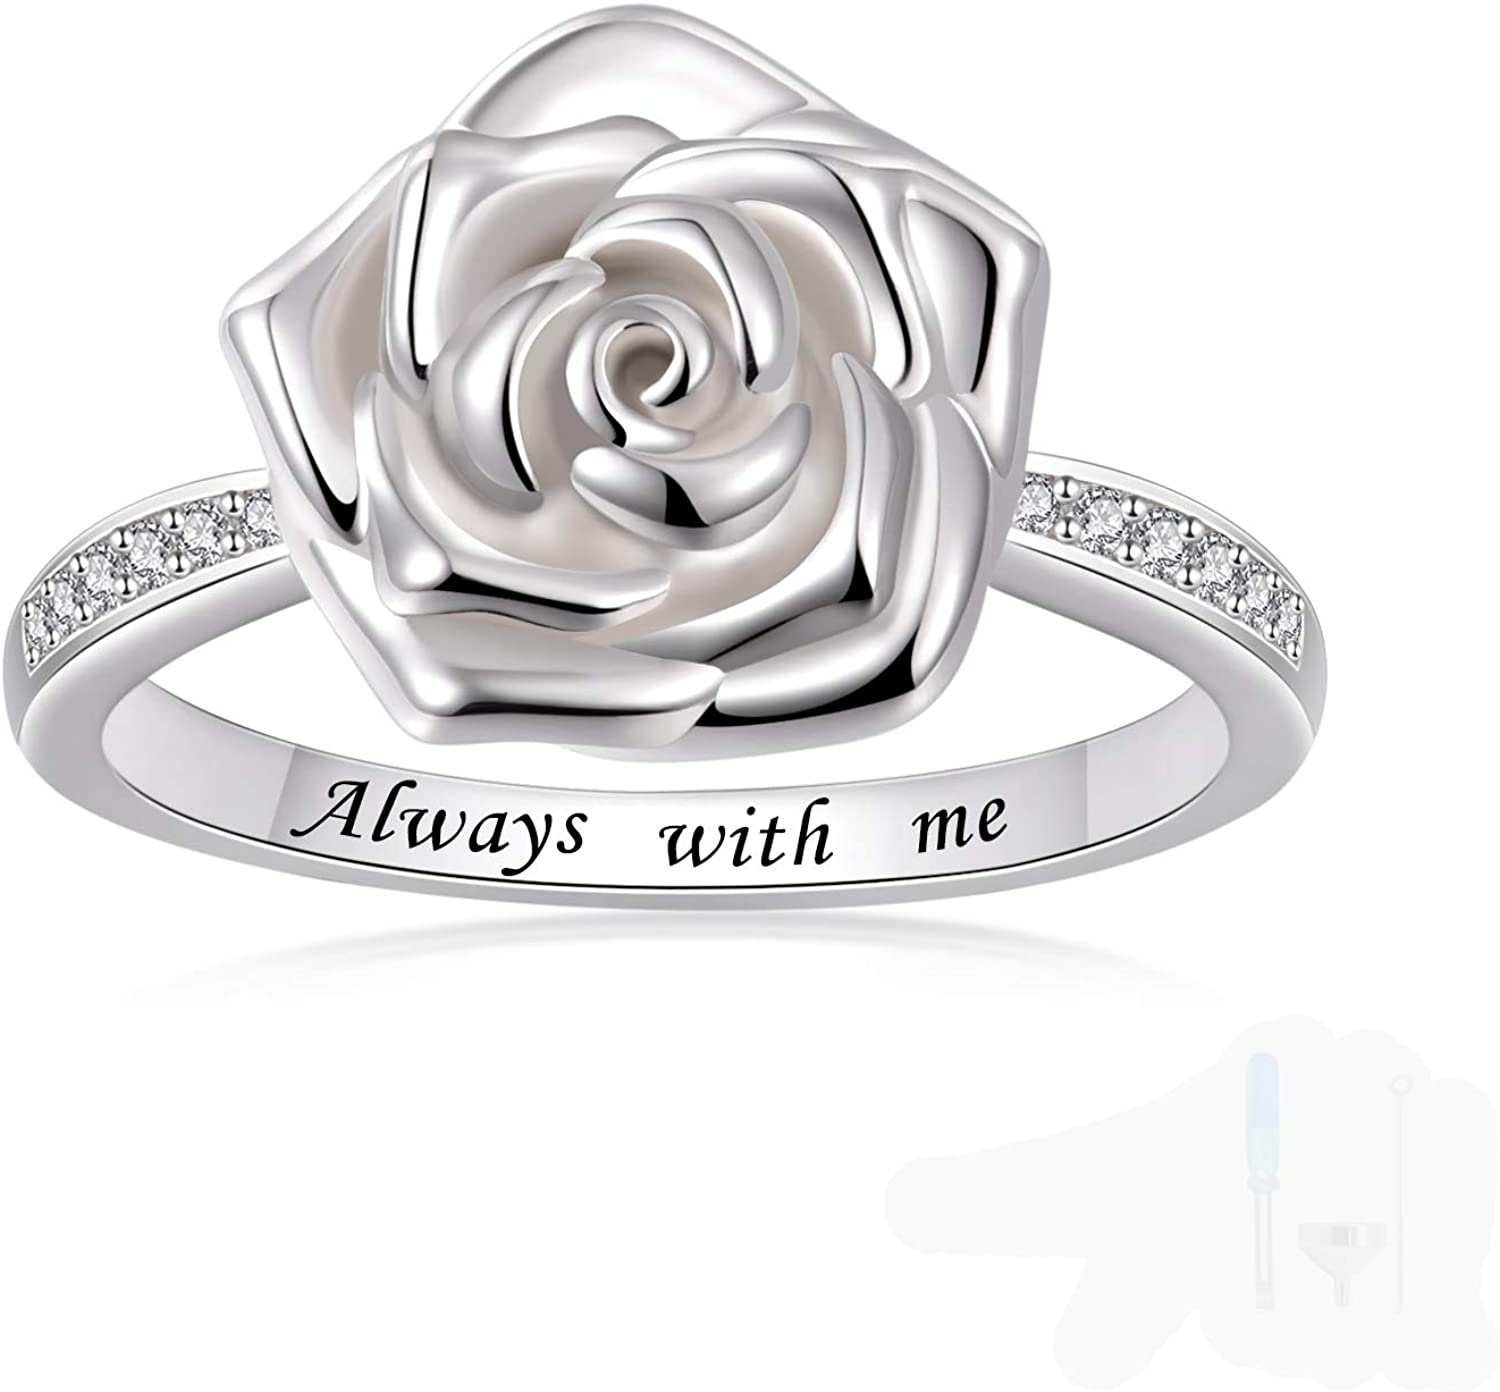 Bombing free shipping Rose Flower urn Ring for Ashes m Silver Bargain 925 Sterling with Always